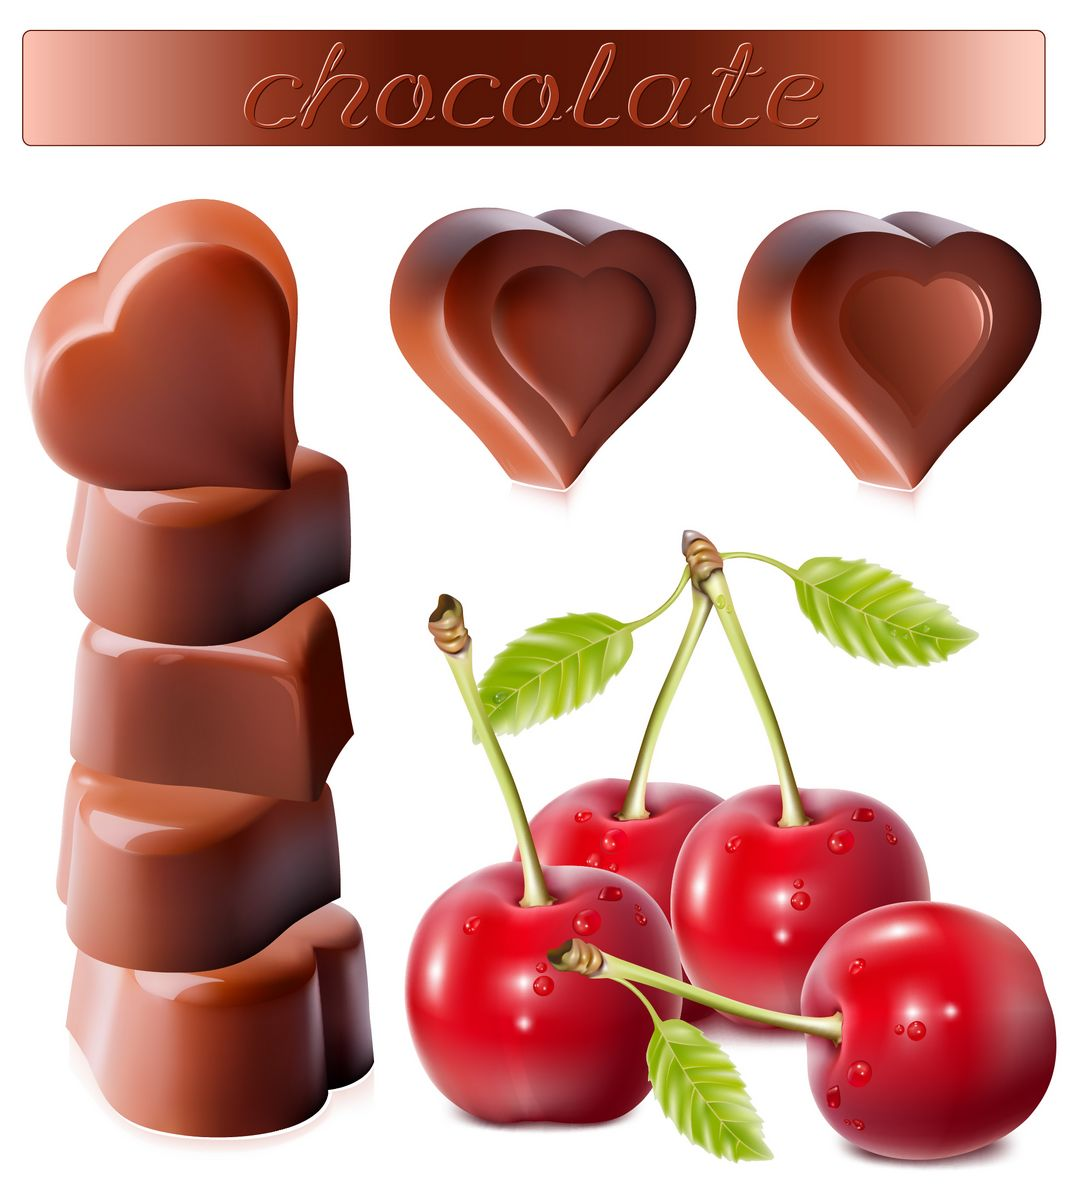 Chocolates and cherry png